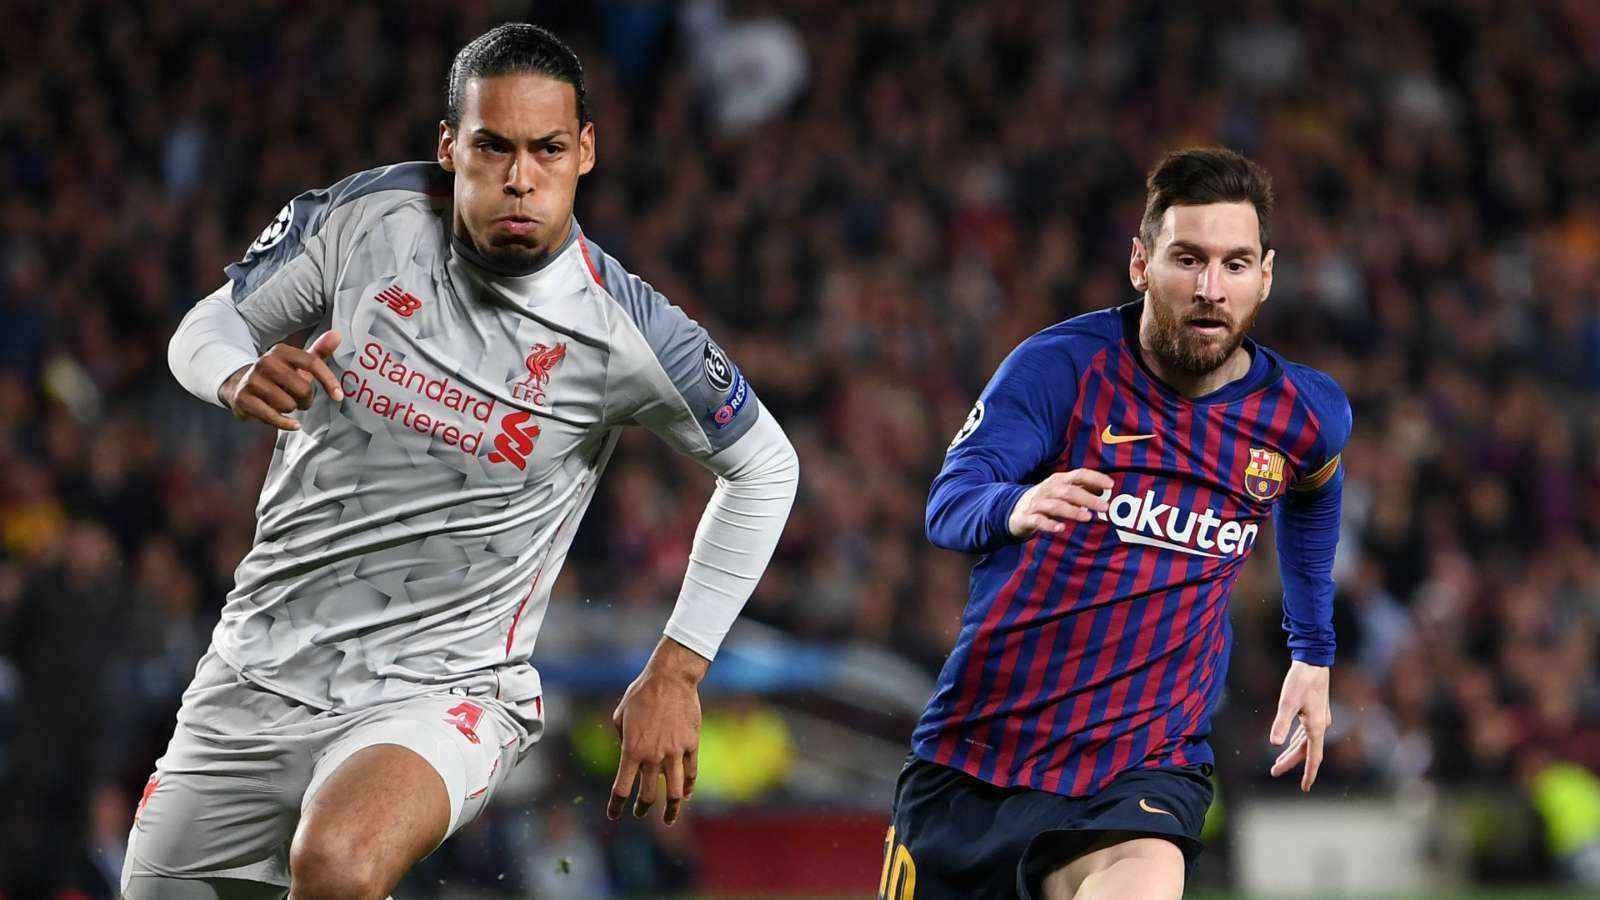 What Van Dijk Said About Messi After The Barcelona Star Won The FIFA Best Player Award